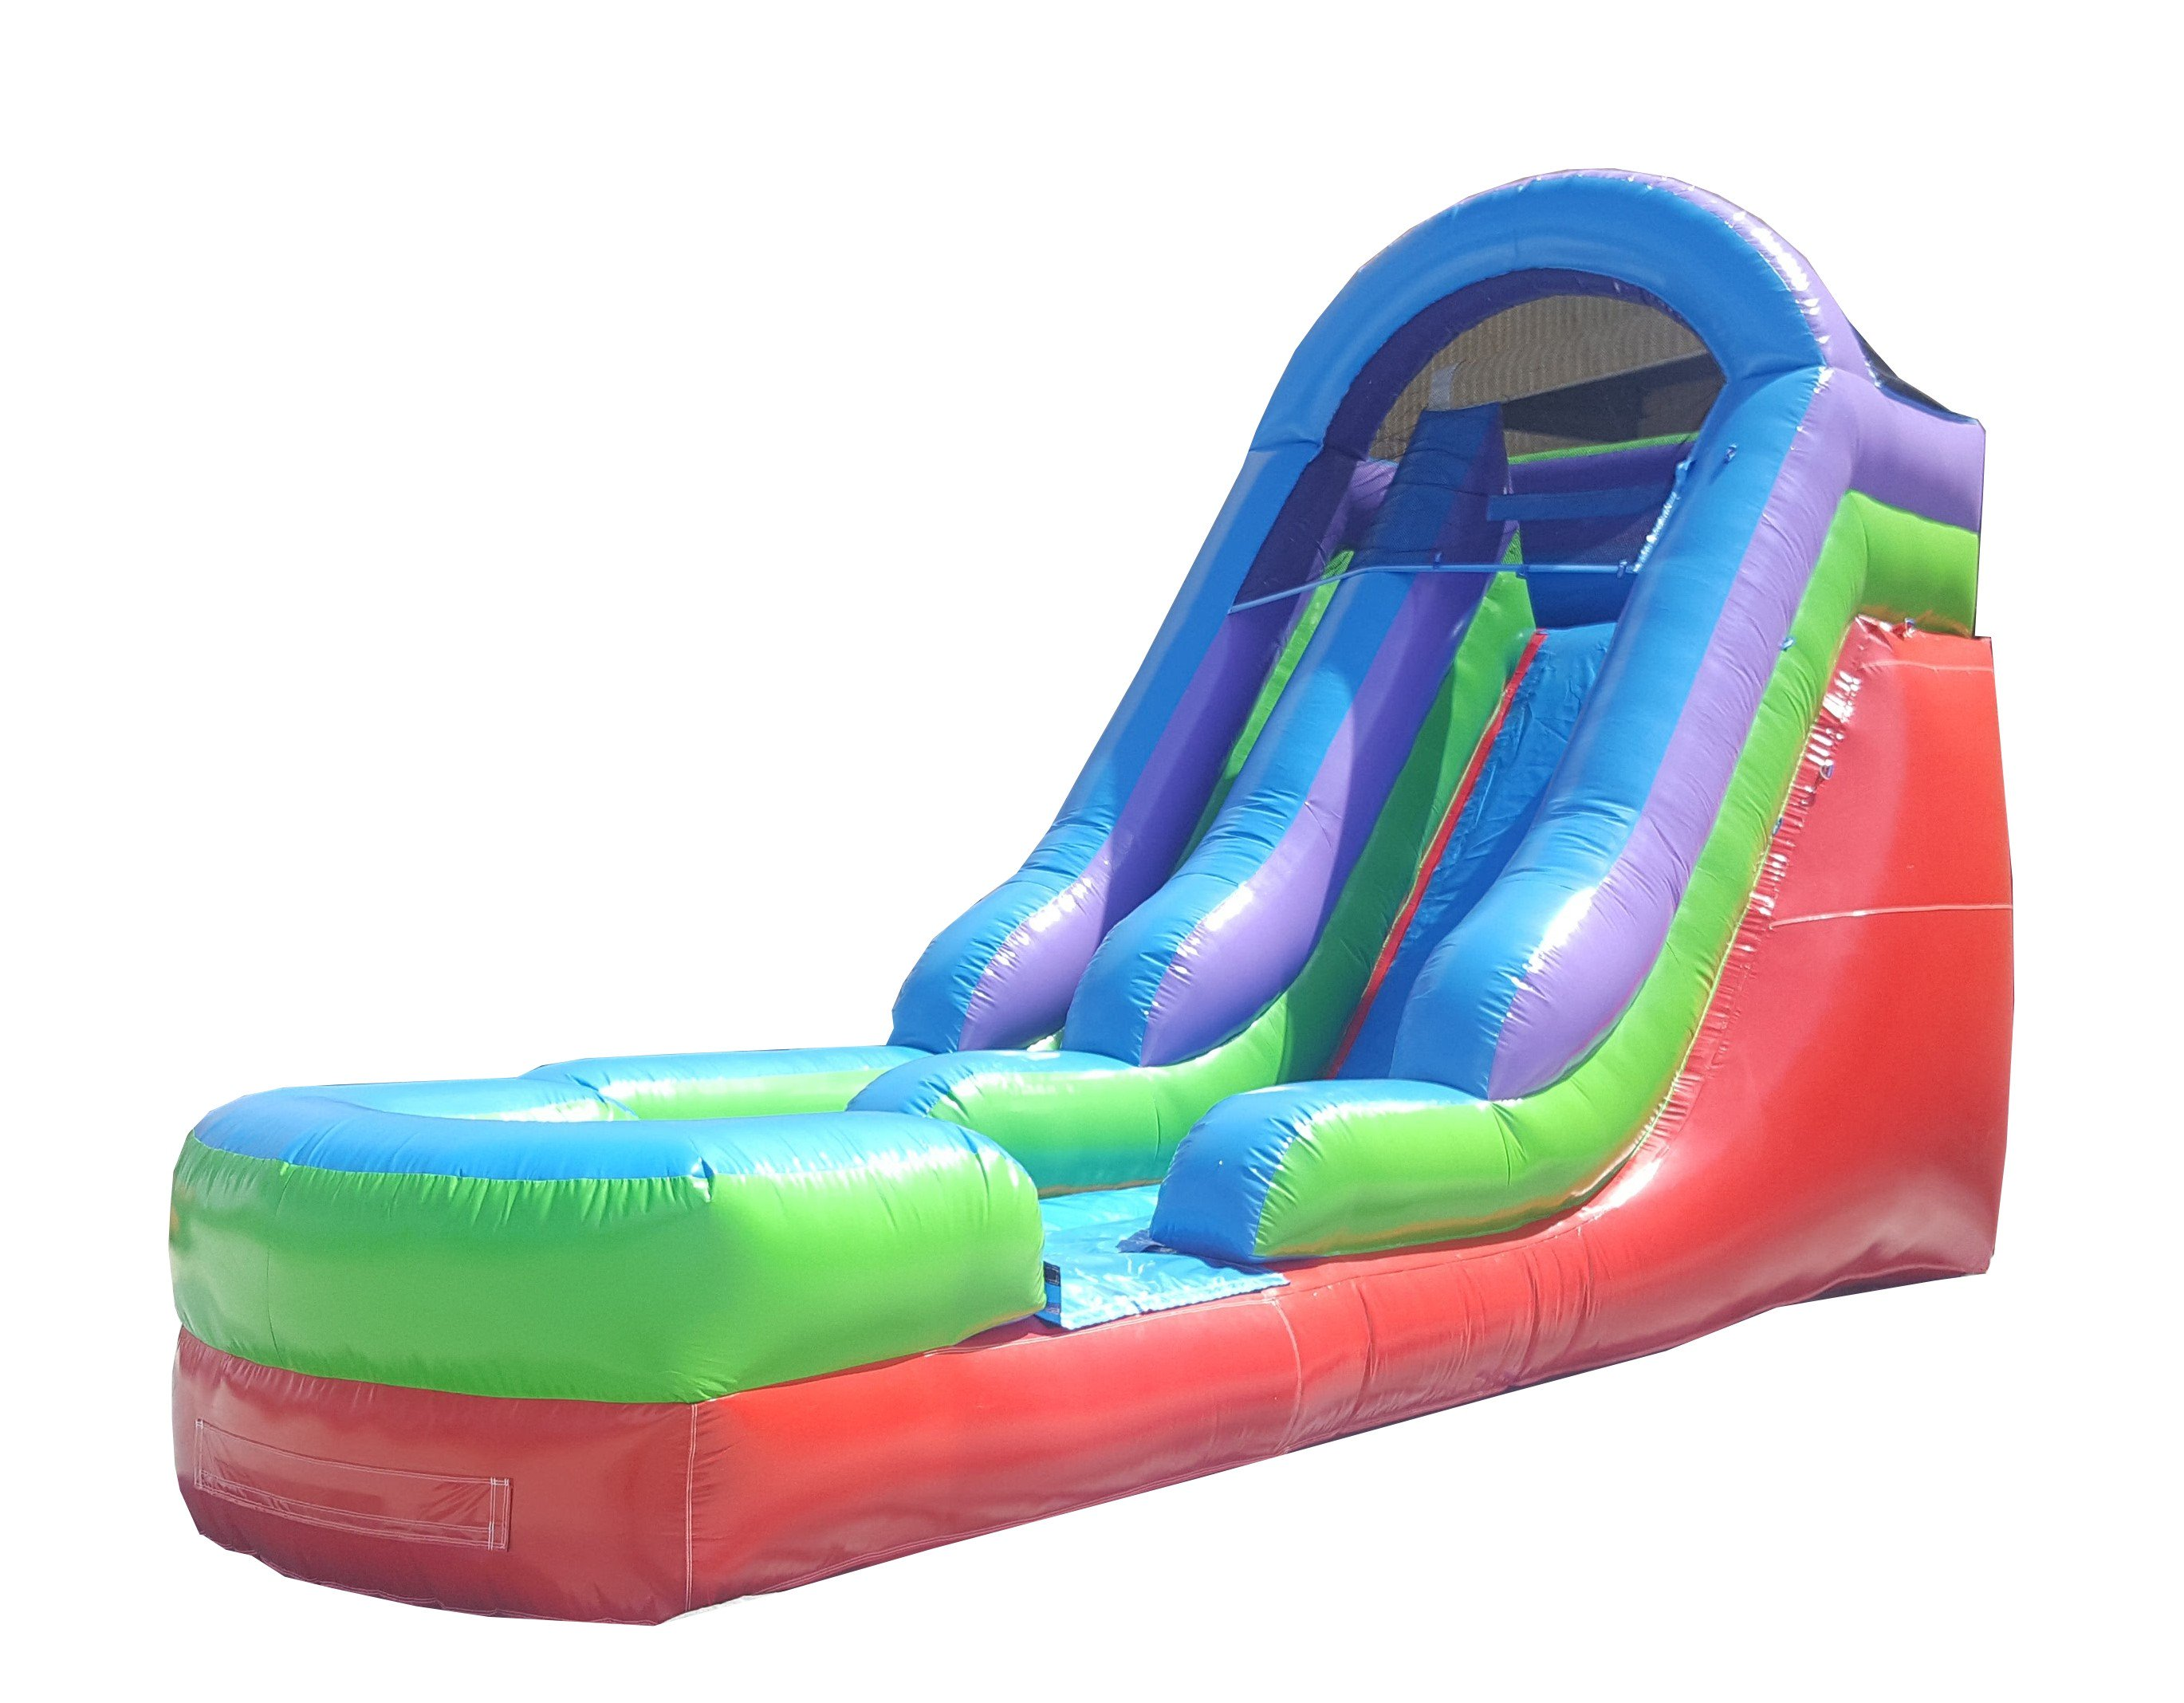 Pogo 15' Retro Rainbow Monster Wet or Dry Slide